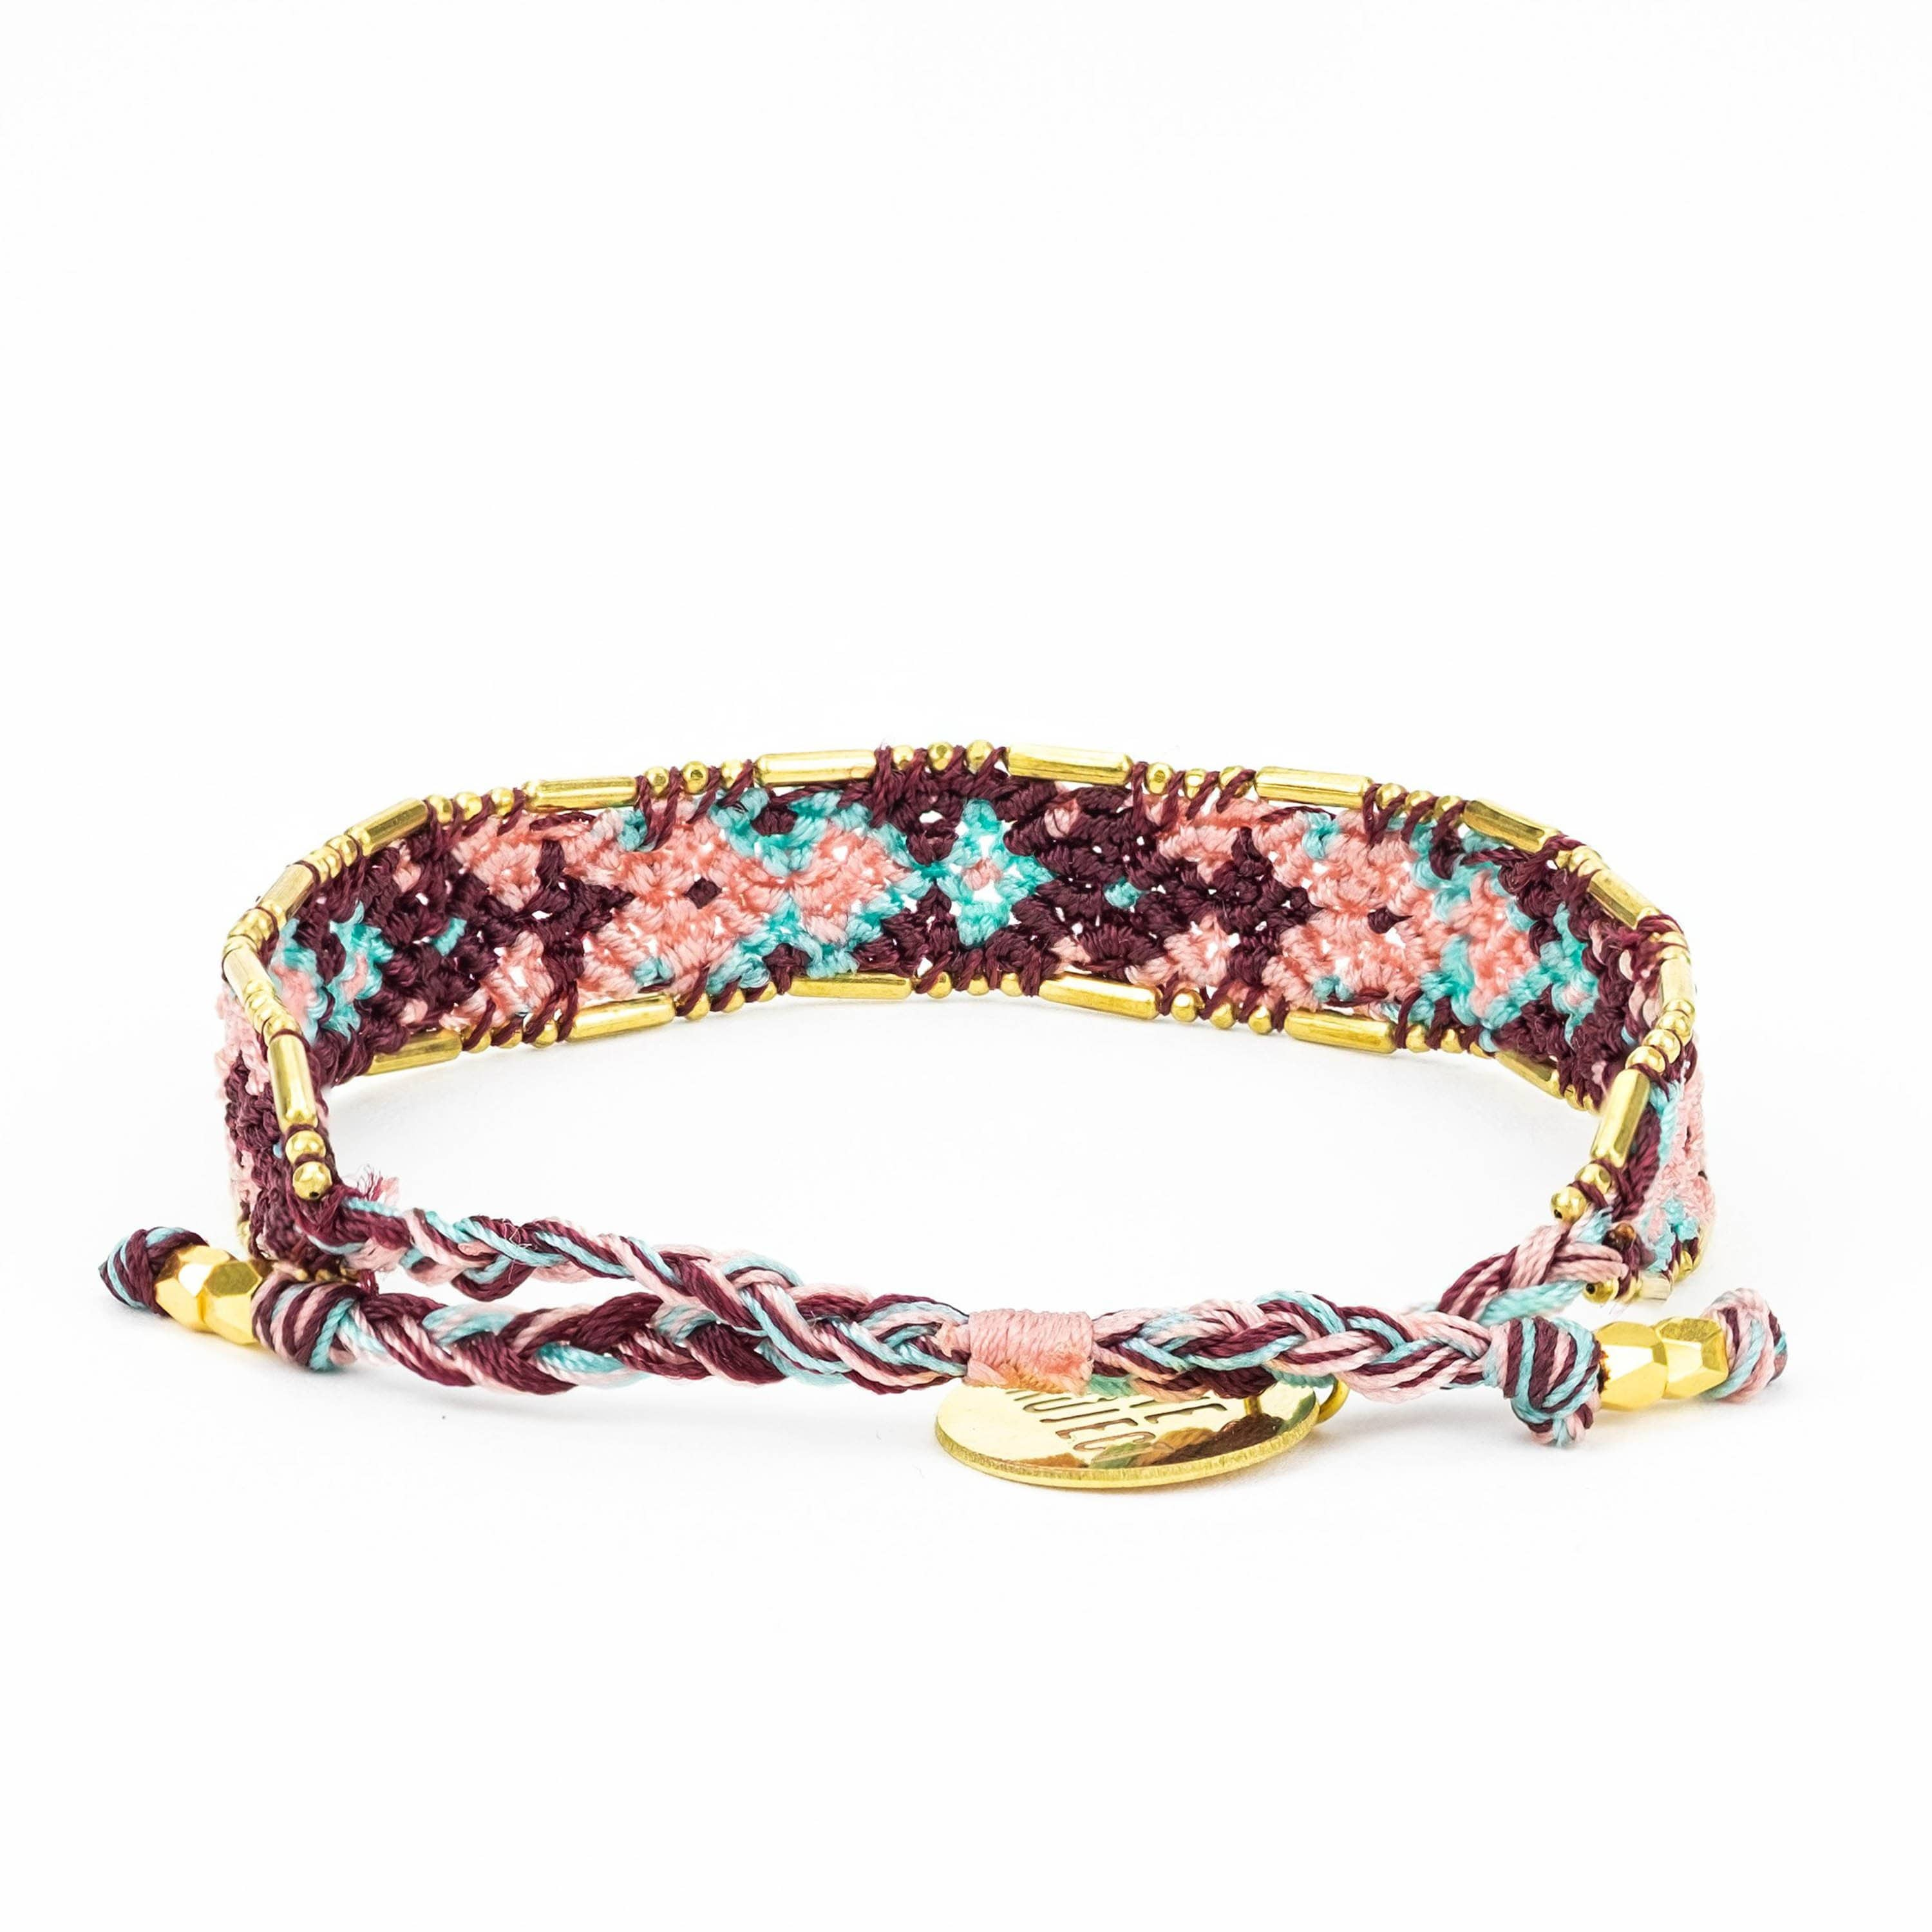 Bali Friendship Bracelet - Sunset Uluwatu back view Love Is Project woven bracelets by artisans in Indonesia. Beaded bracelets creates jobs.